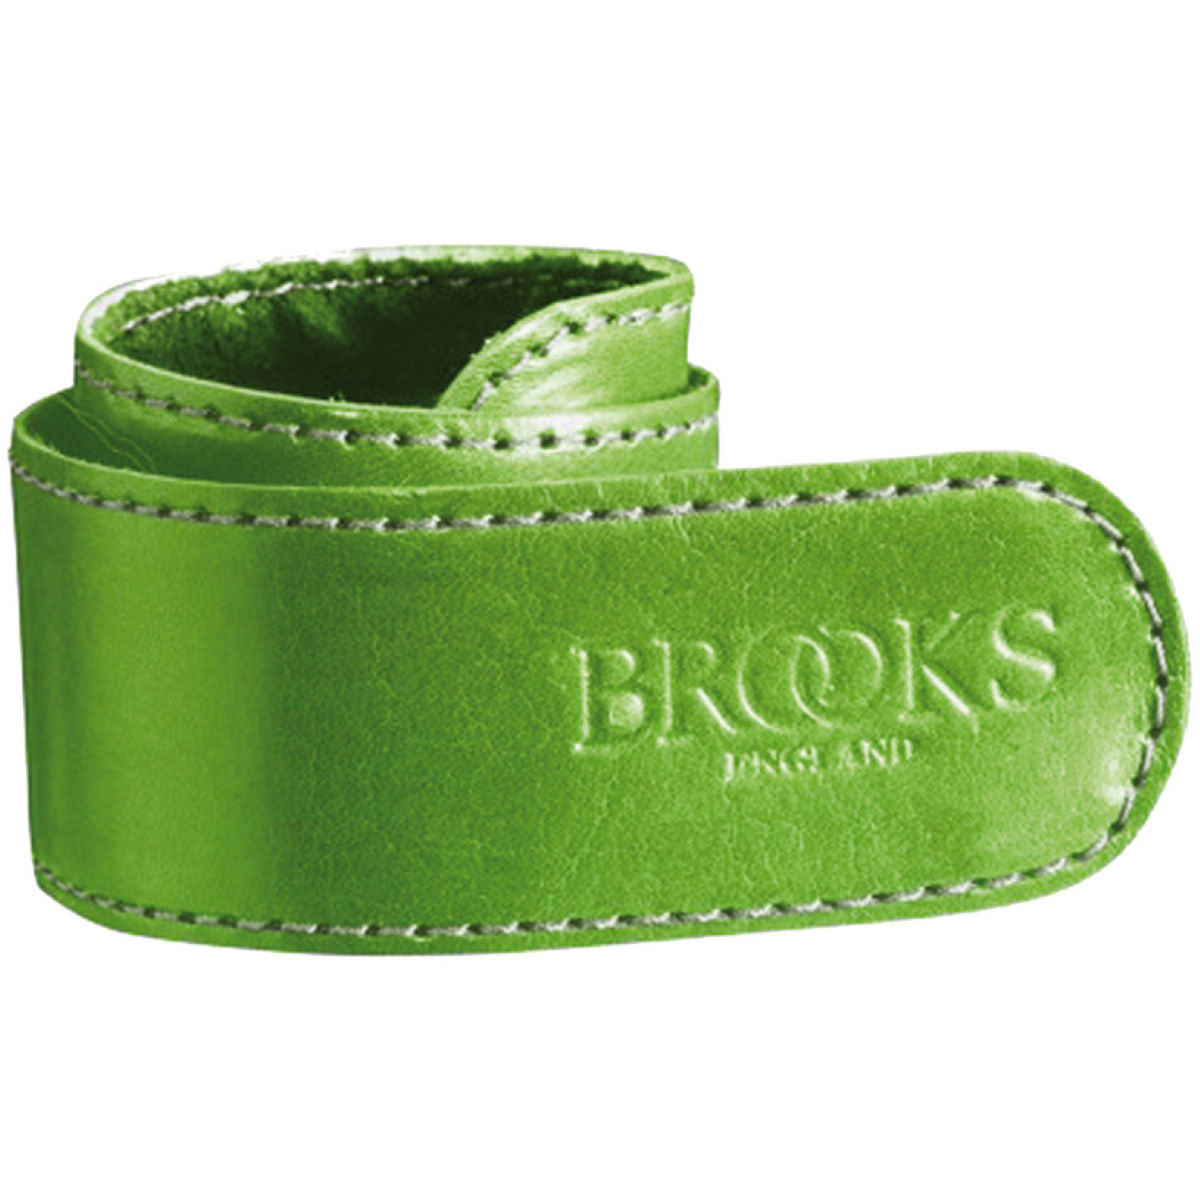 Brooks Brooks Trouser Strap:Green:One Size - Calapiés